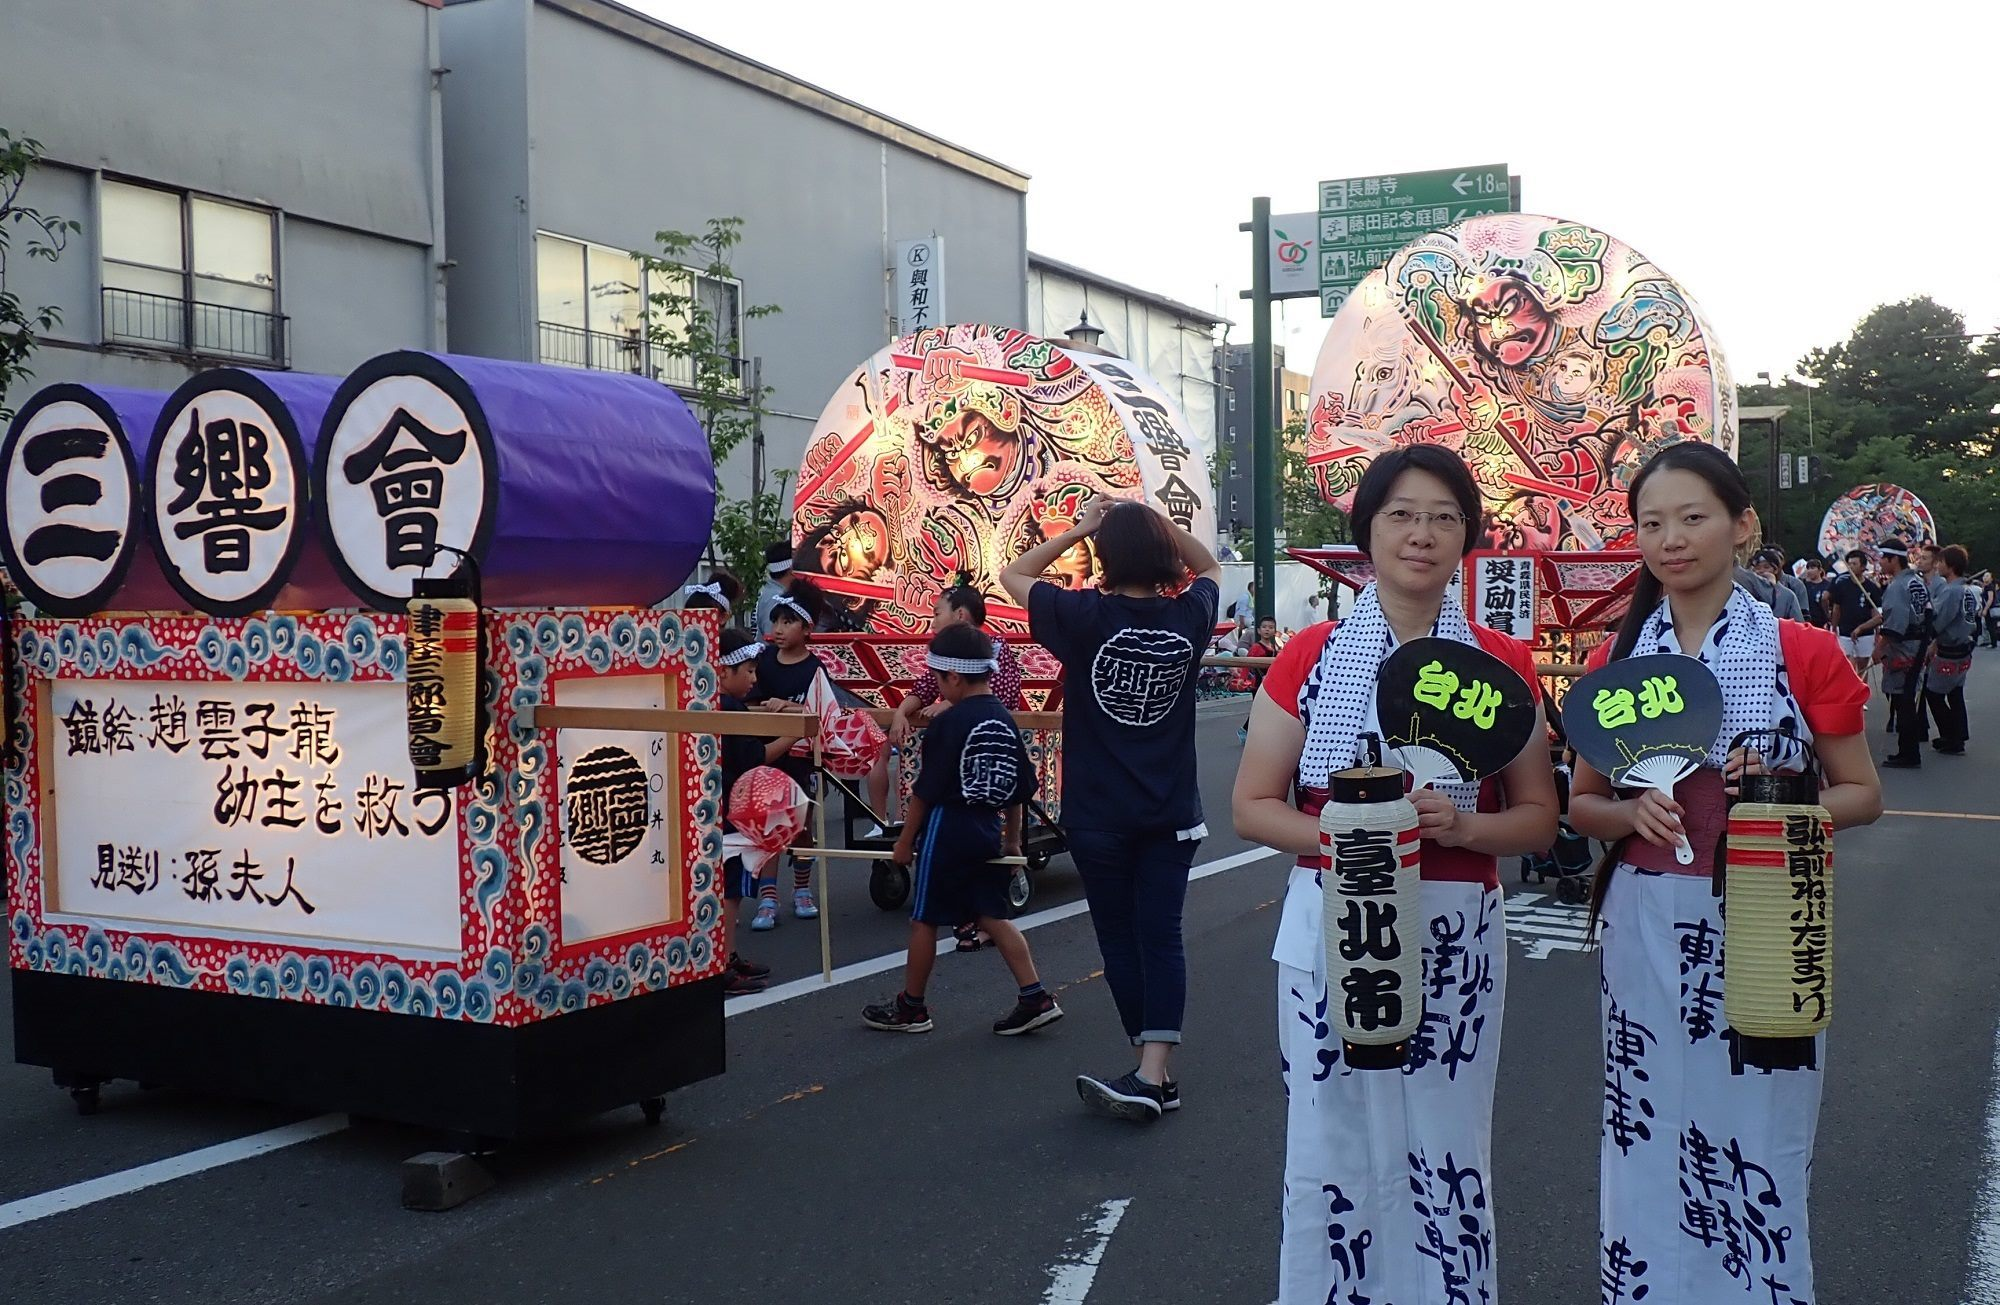 TPEDOIT Joins Procession, Promotes City Tourism at Aomori Nebuta Festival